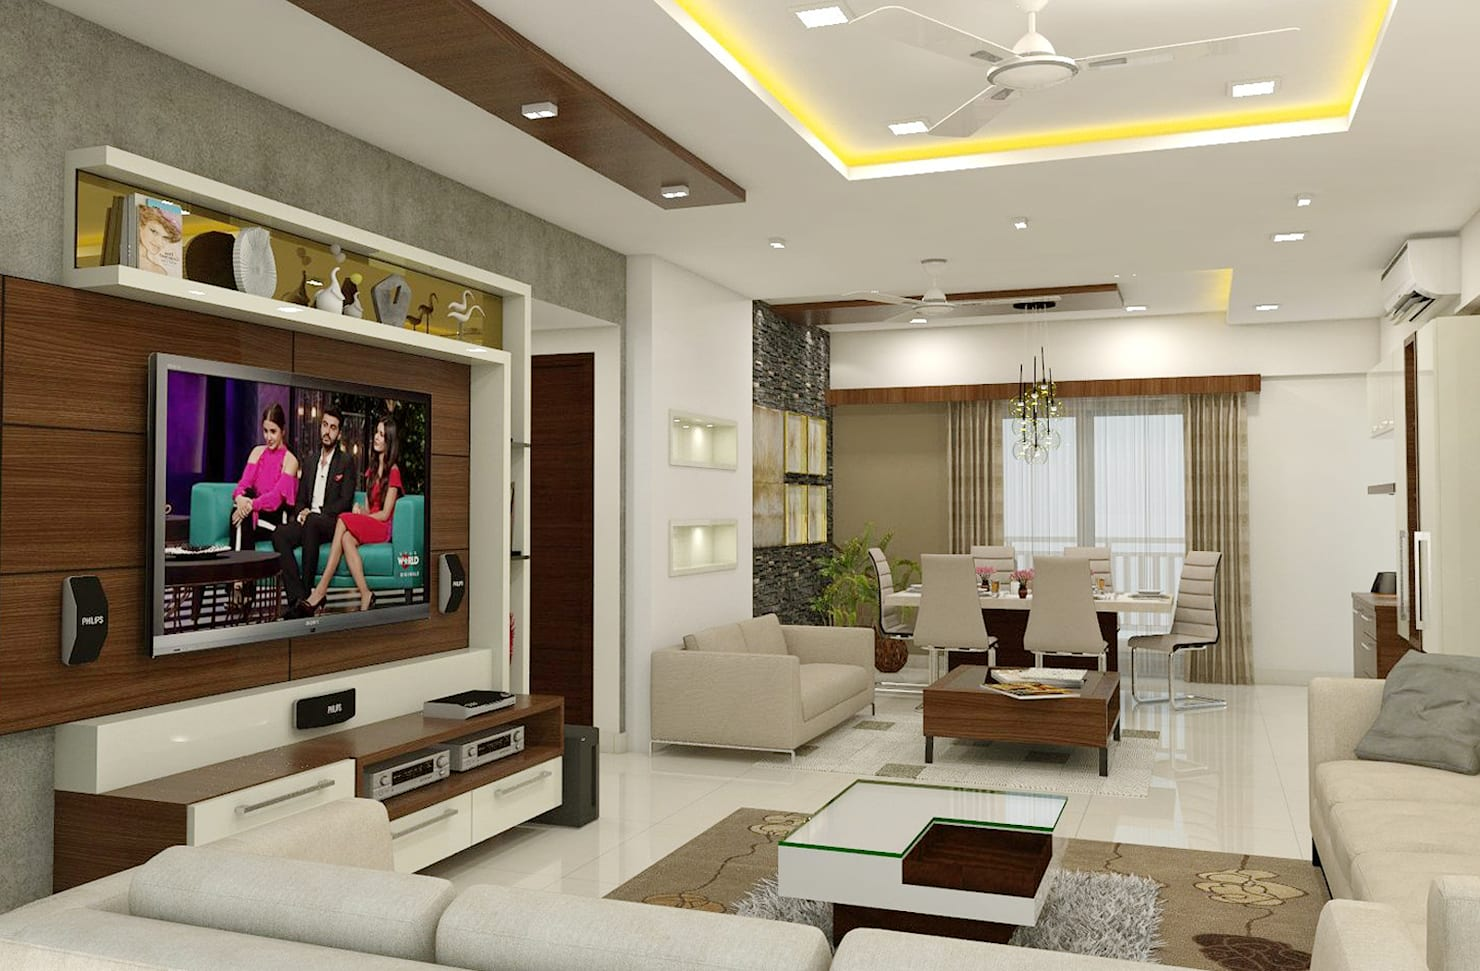 Interior design ideas from a 3BHK flat in Hyderabad